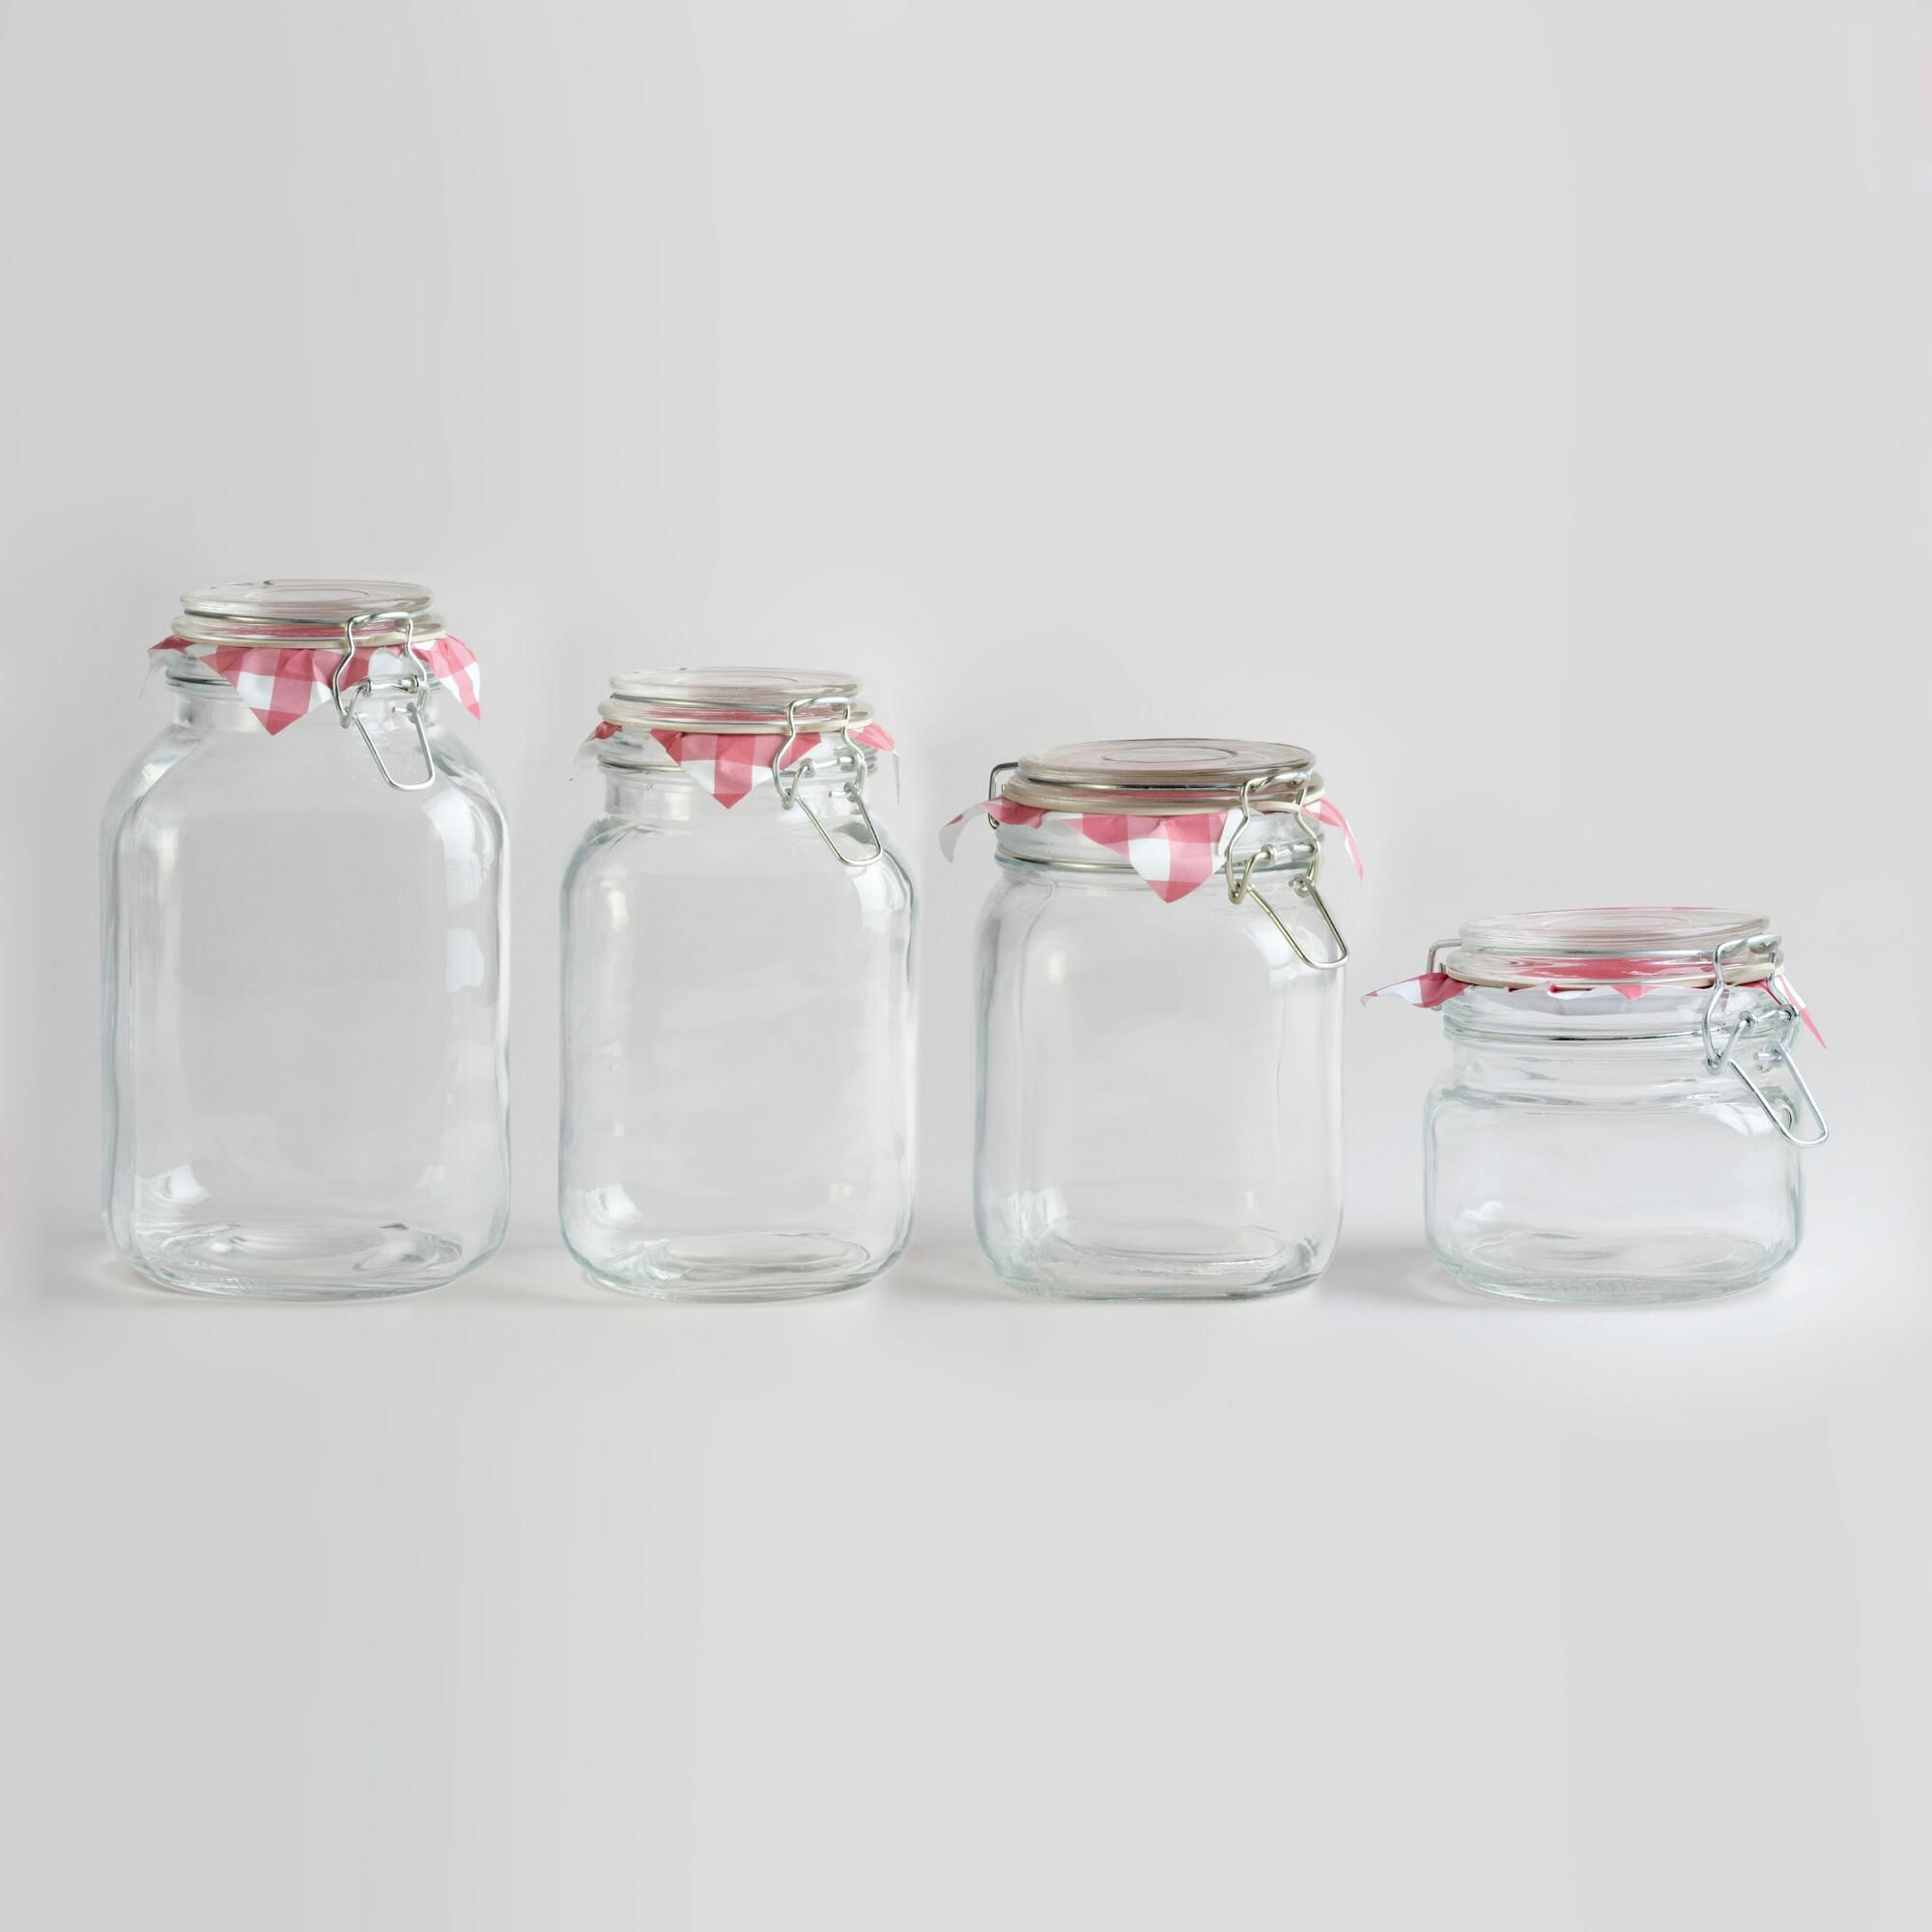 Glass kitchen utensils - Round Glass Jars With Clamp Lids Kitchen Utensilskitchen